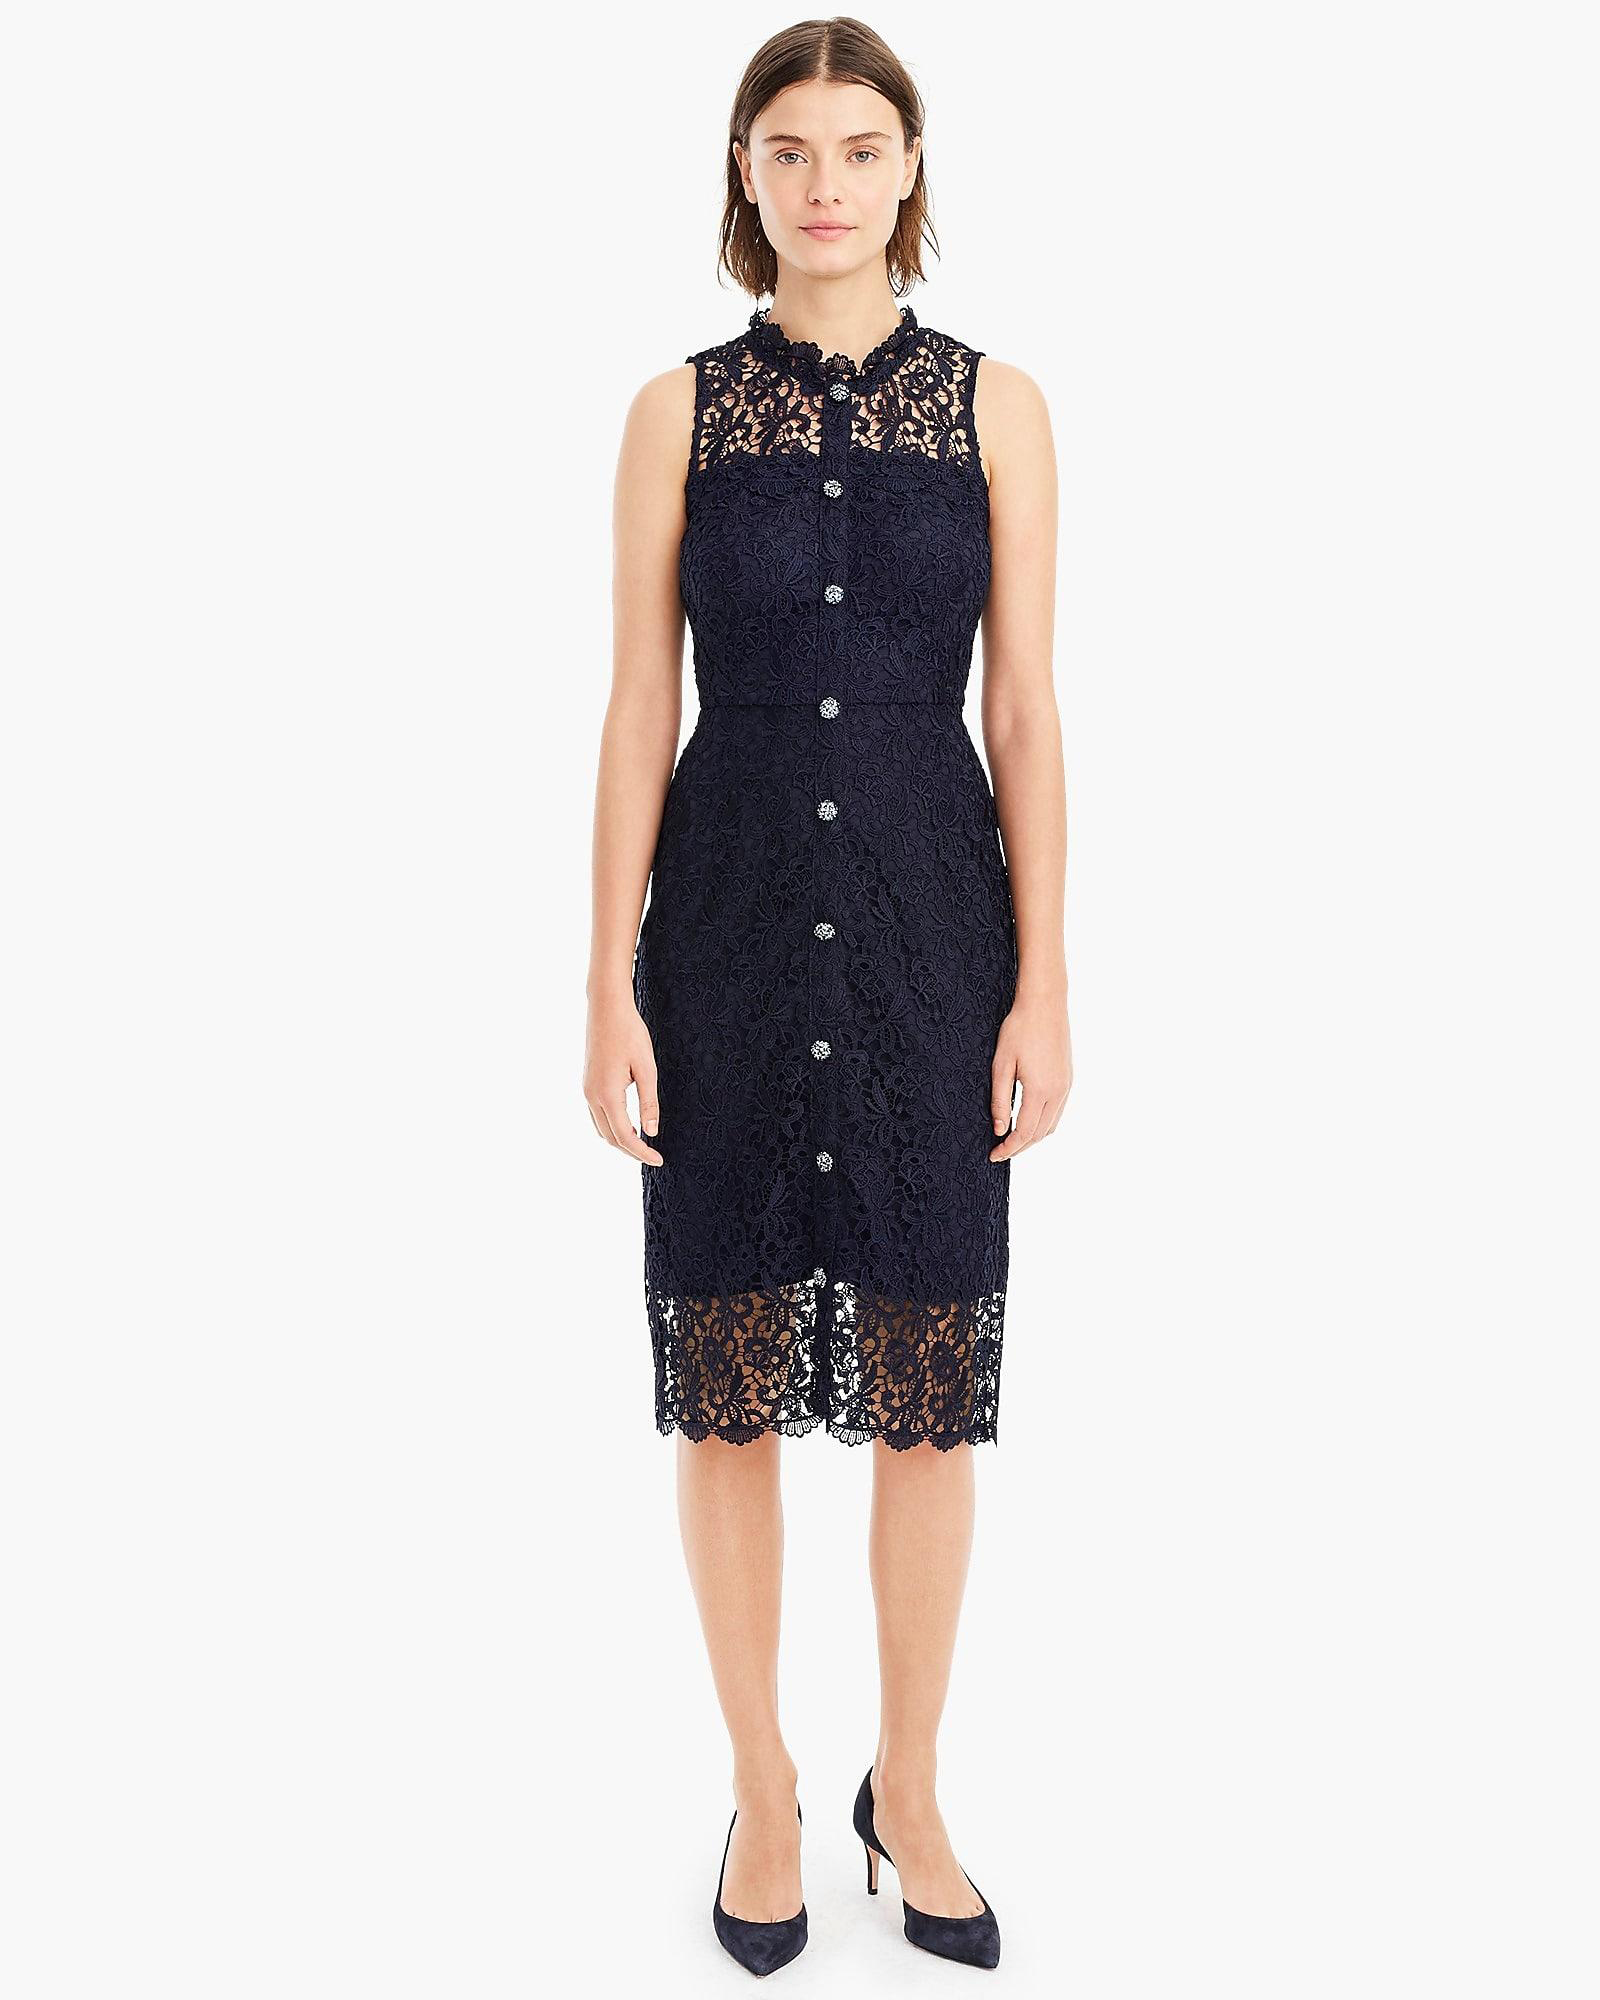 J. Crew Sleeveless Guipure Lace Sheath Dress with Jewel Buttons